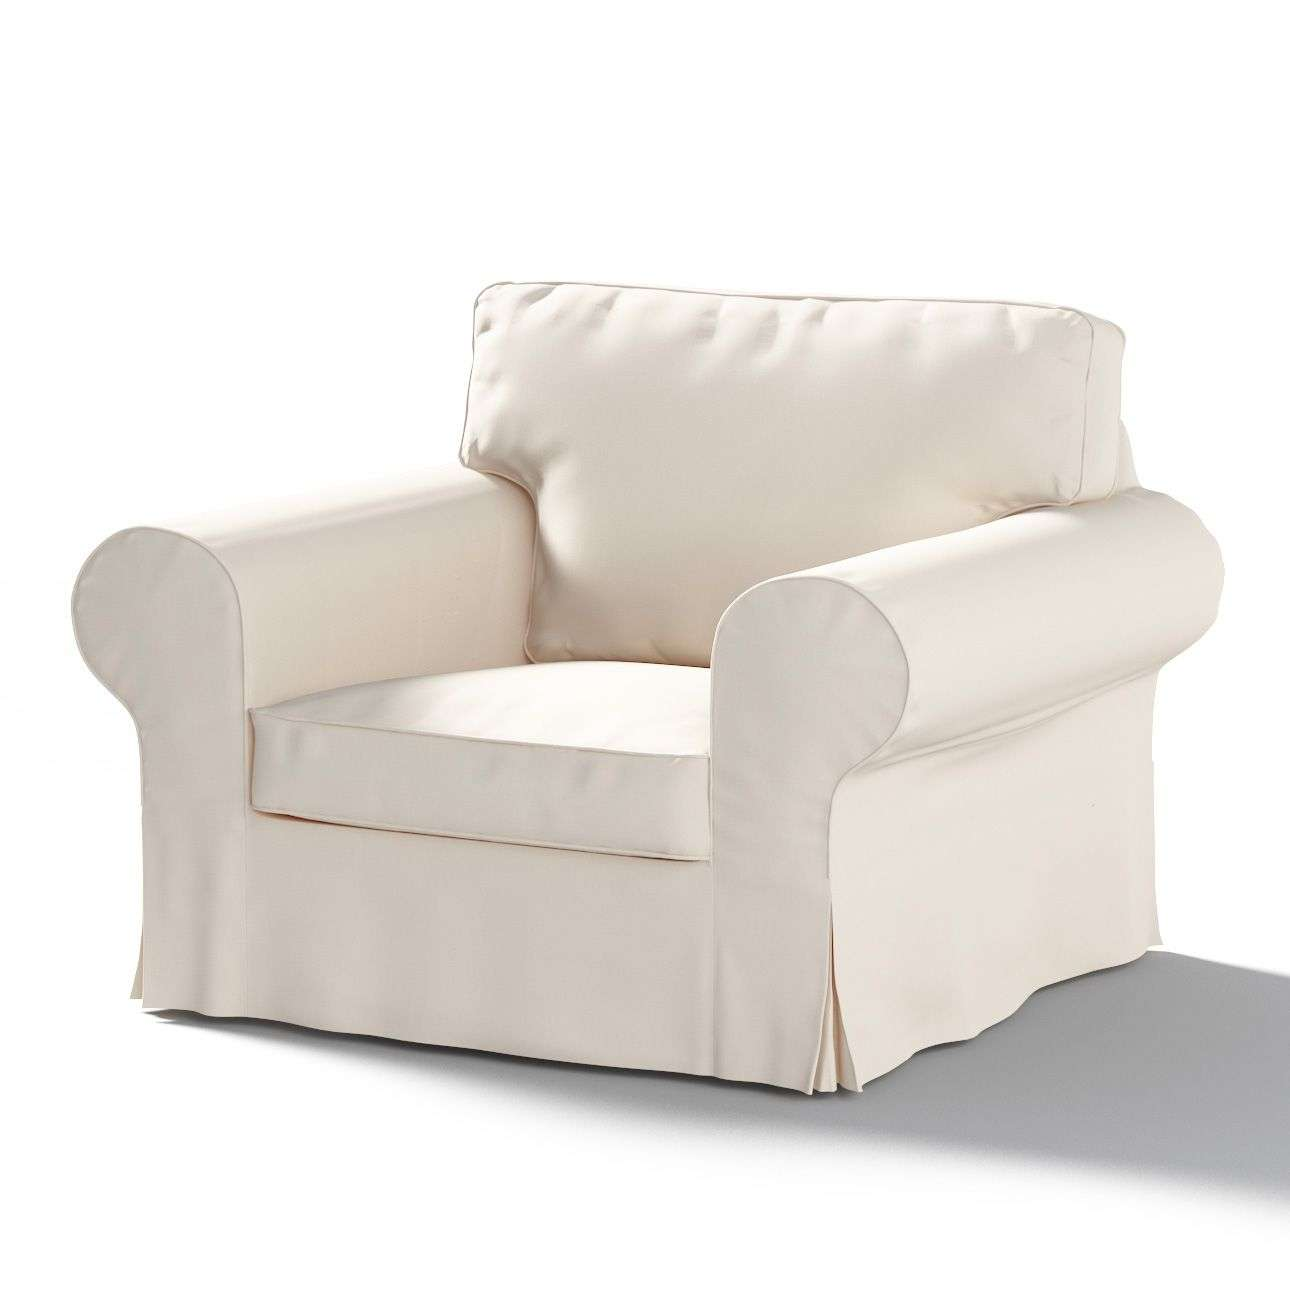 armchair covers for sale 28 images 25 best collection of armchair covers for sale old why. Black Bedroom Furniture Sets. Home Design Ideas